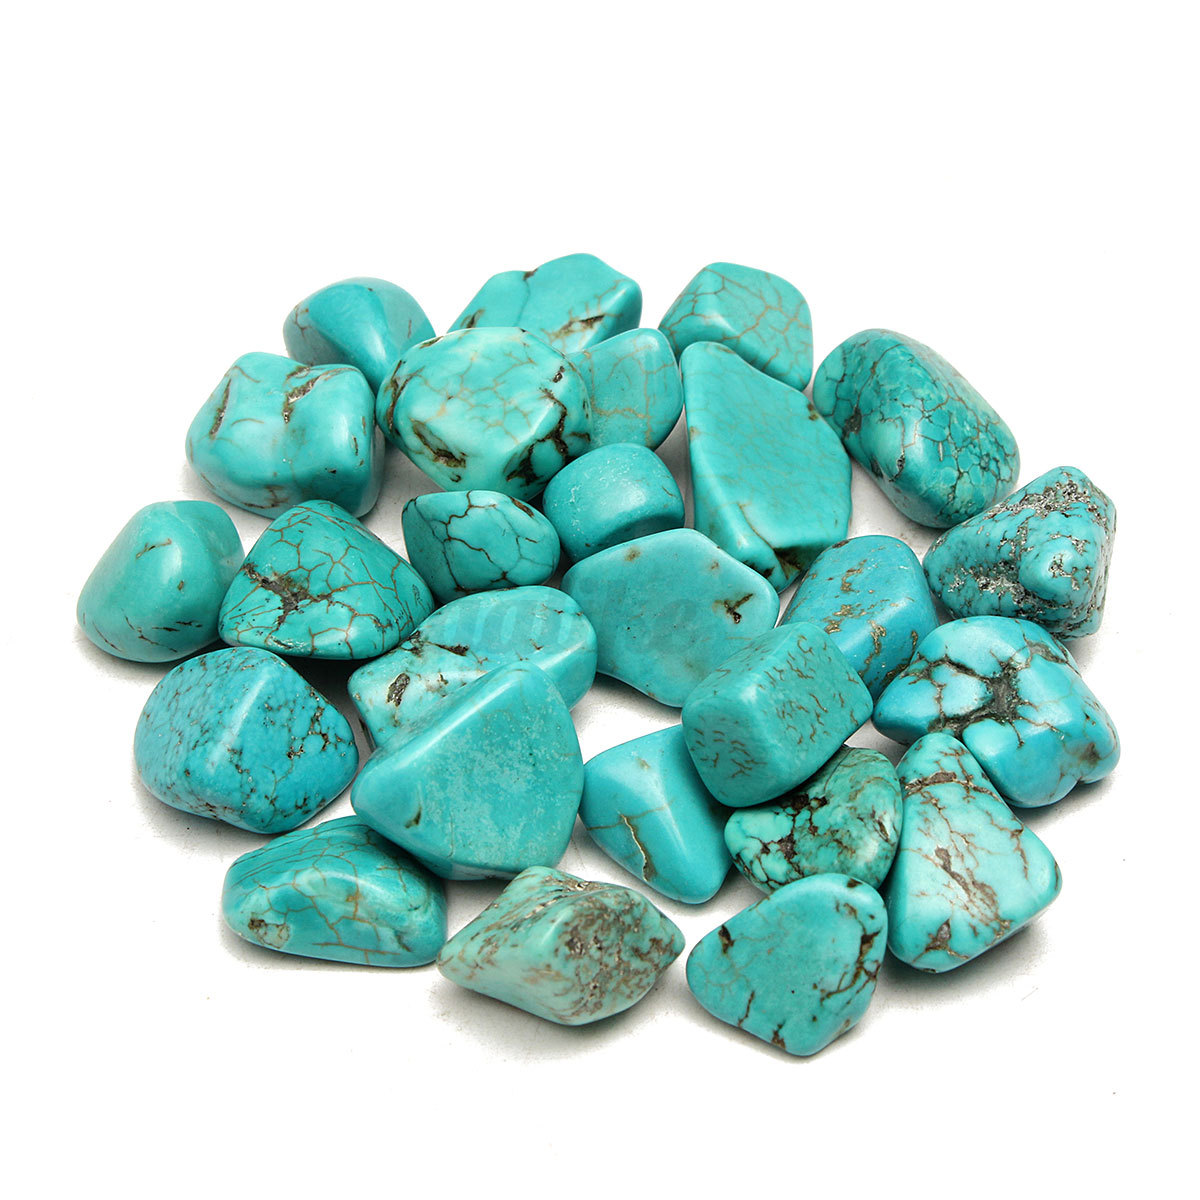 100g Blue Turquoise Stone Polished Rough Healing Nugget